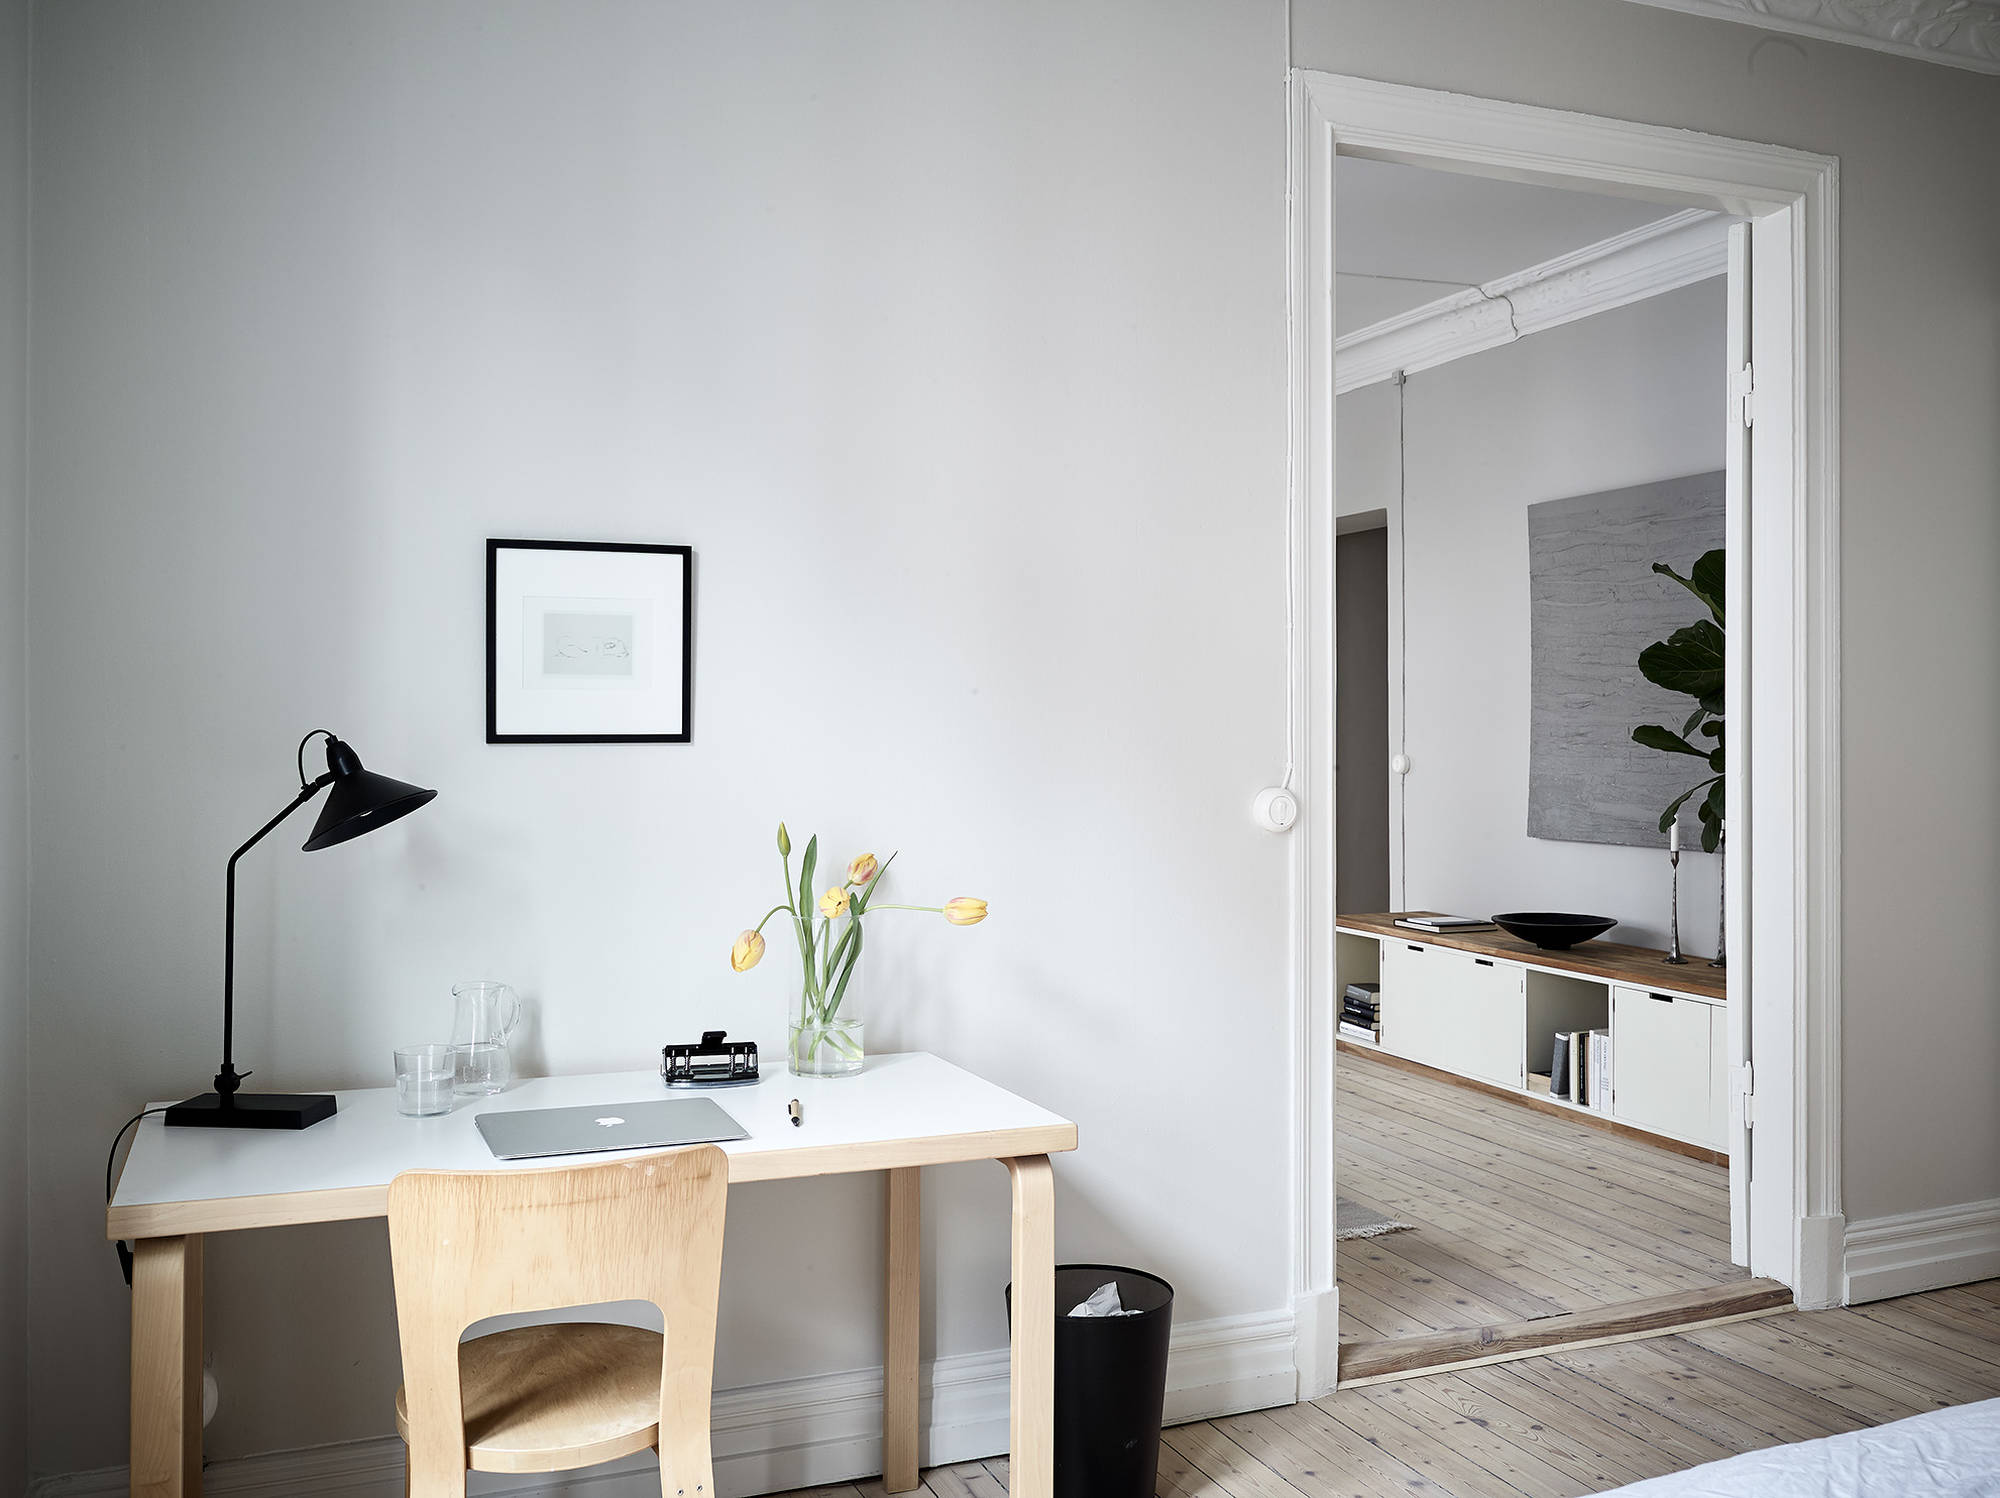 ... A Cozy Home With Greige Walls   Via Coco Lapine Design Blog ...